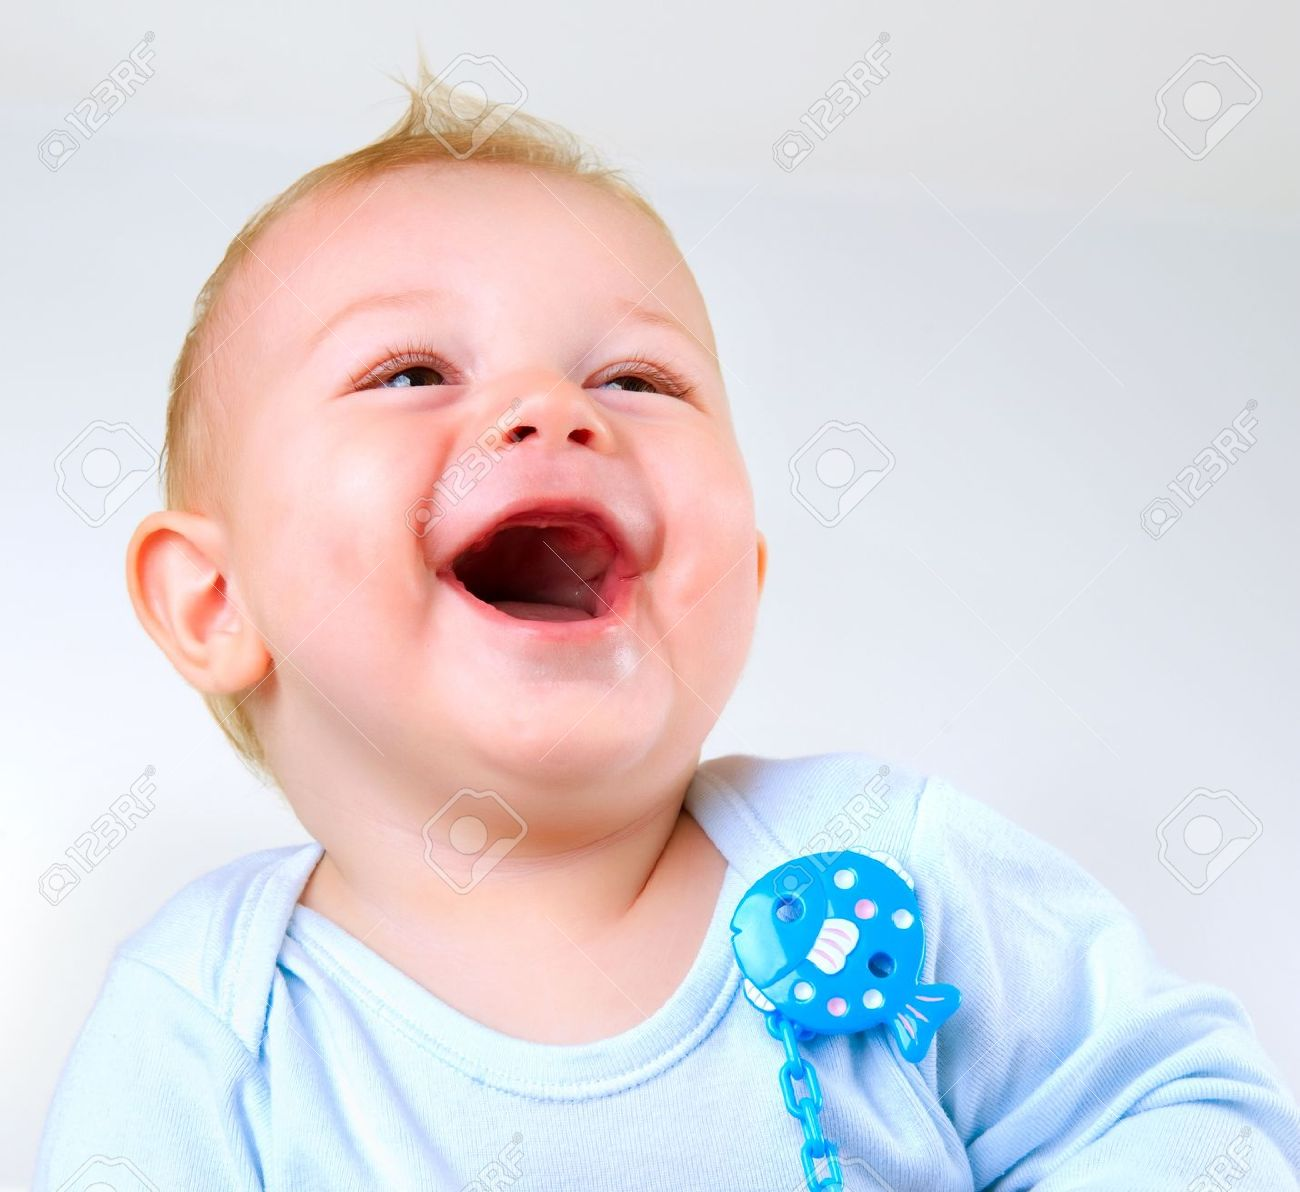 cute baby boy laughing stock photo, picture and royalty free image